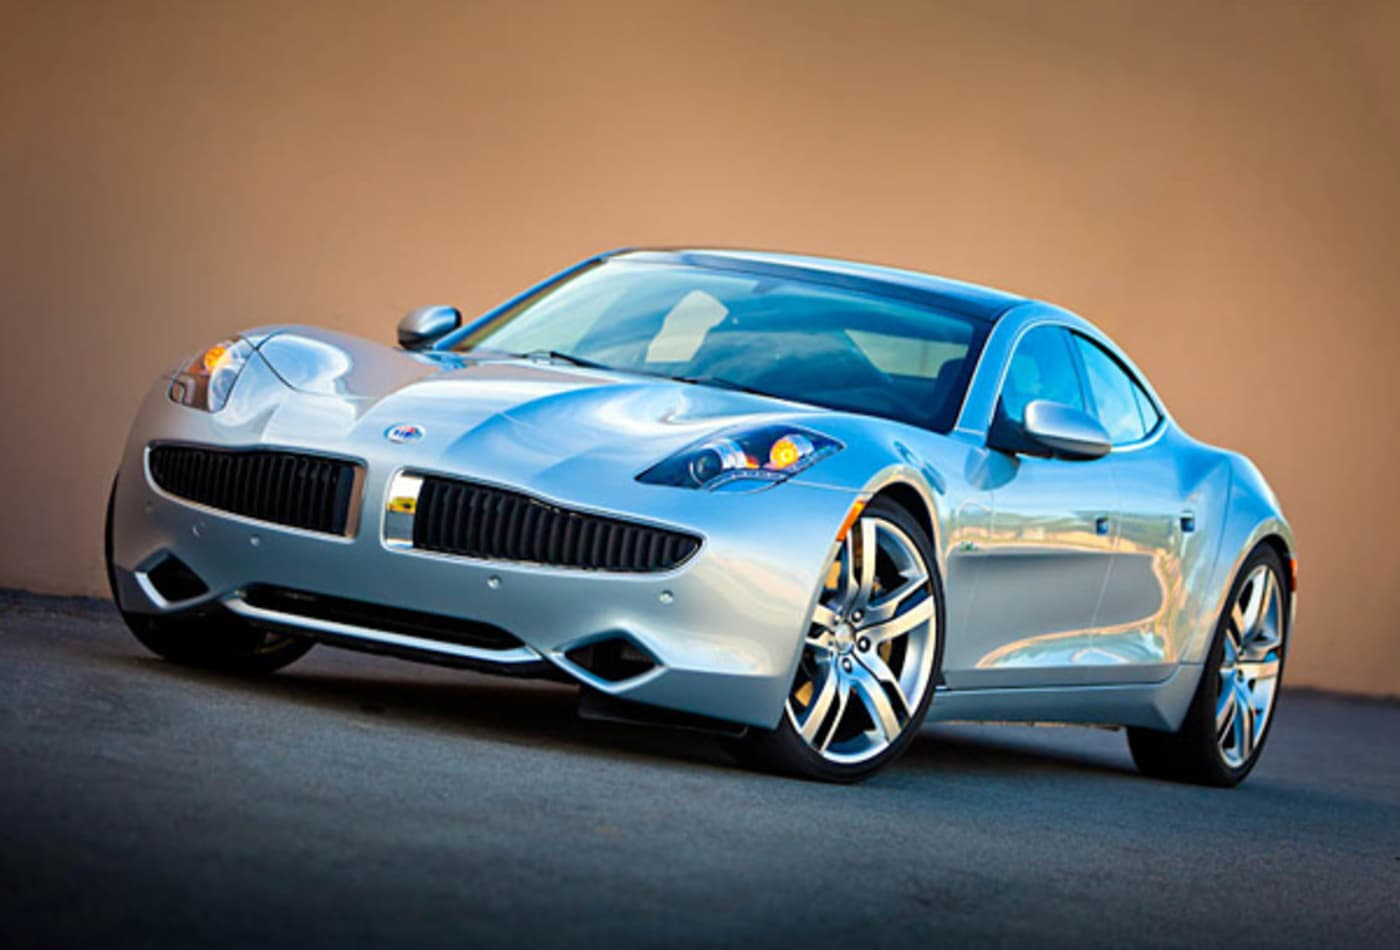 Fisker-Karma-Luxurious-Electric-Cars.jpg